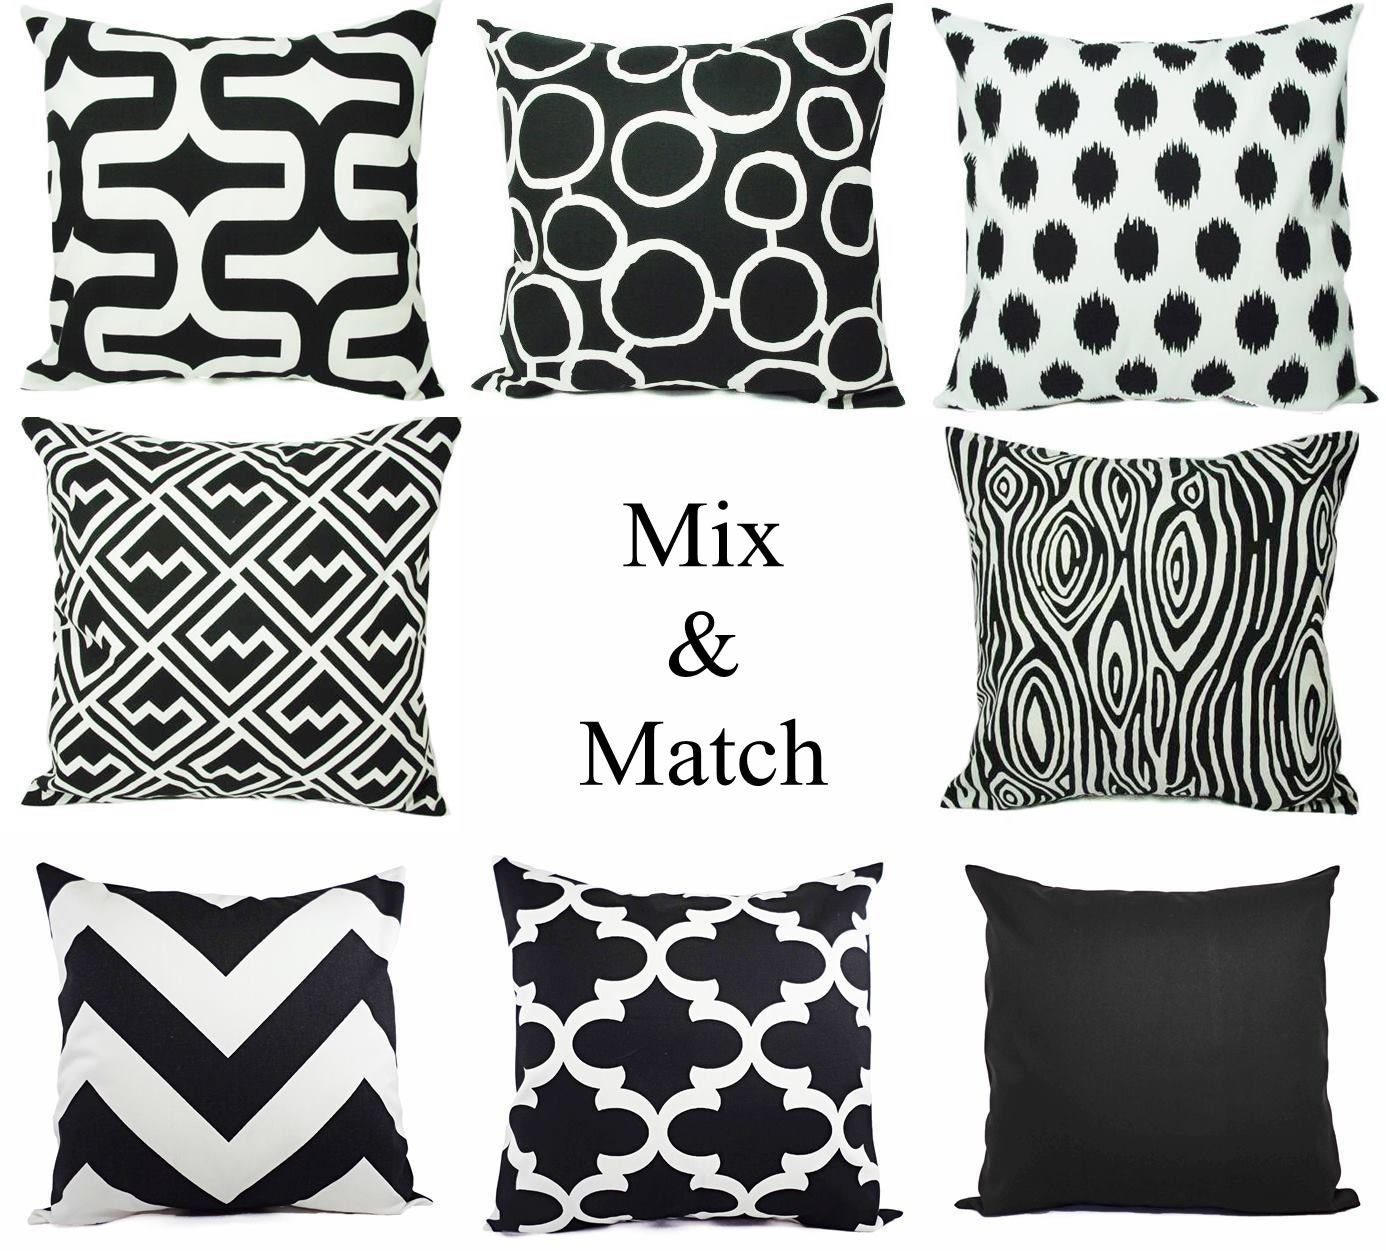 Decorative bed pillows - Black Throw Pillows Black Decorative Pillows